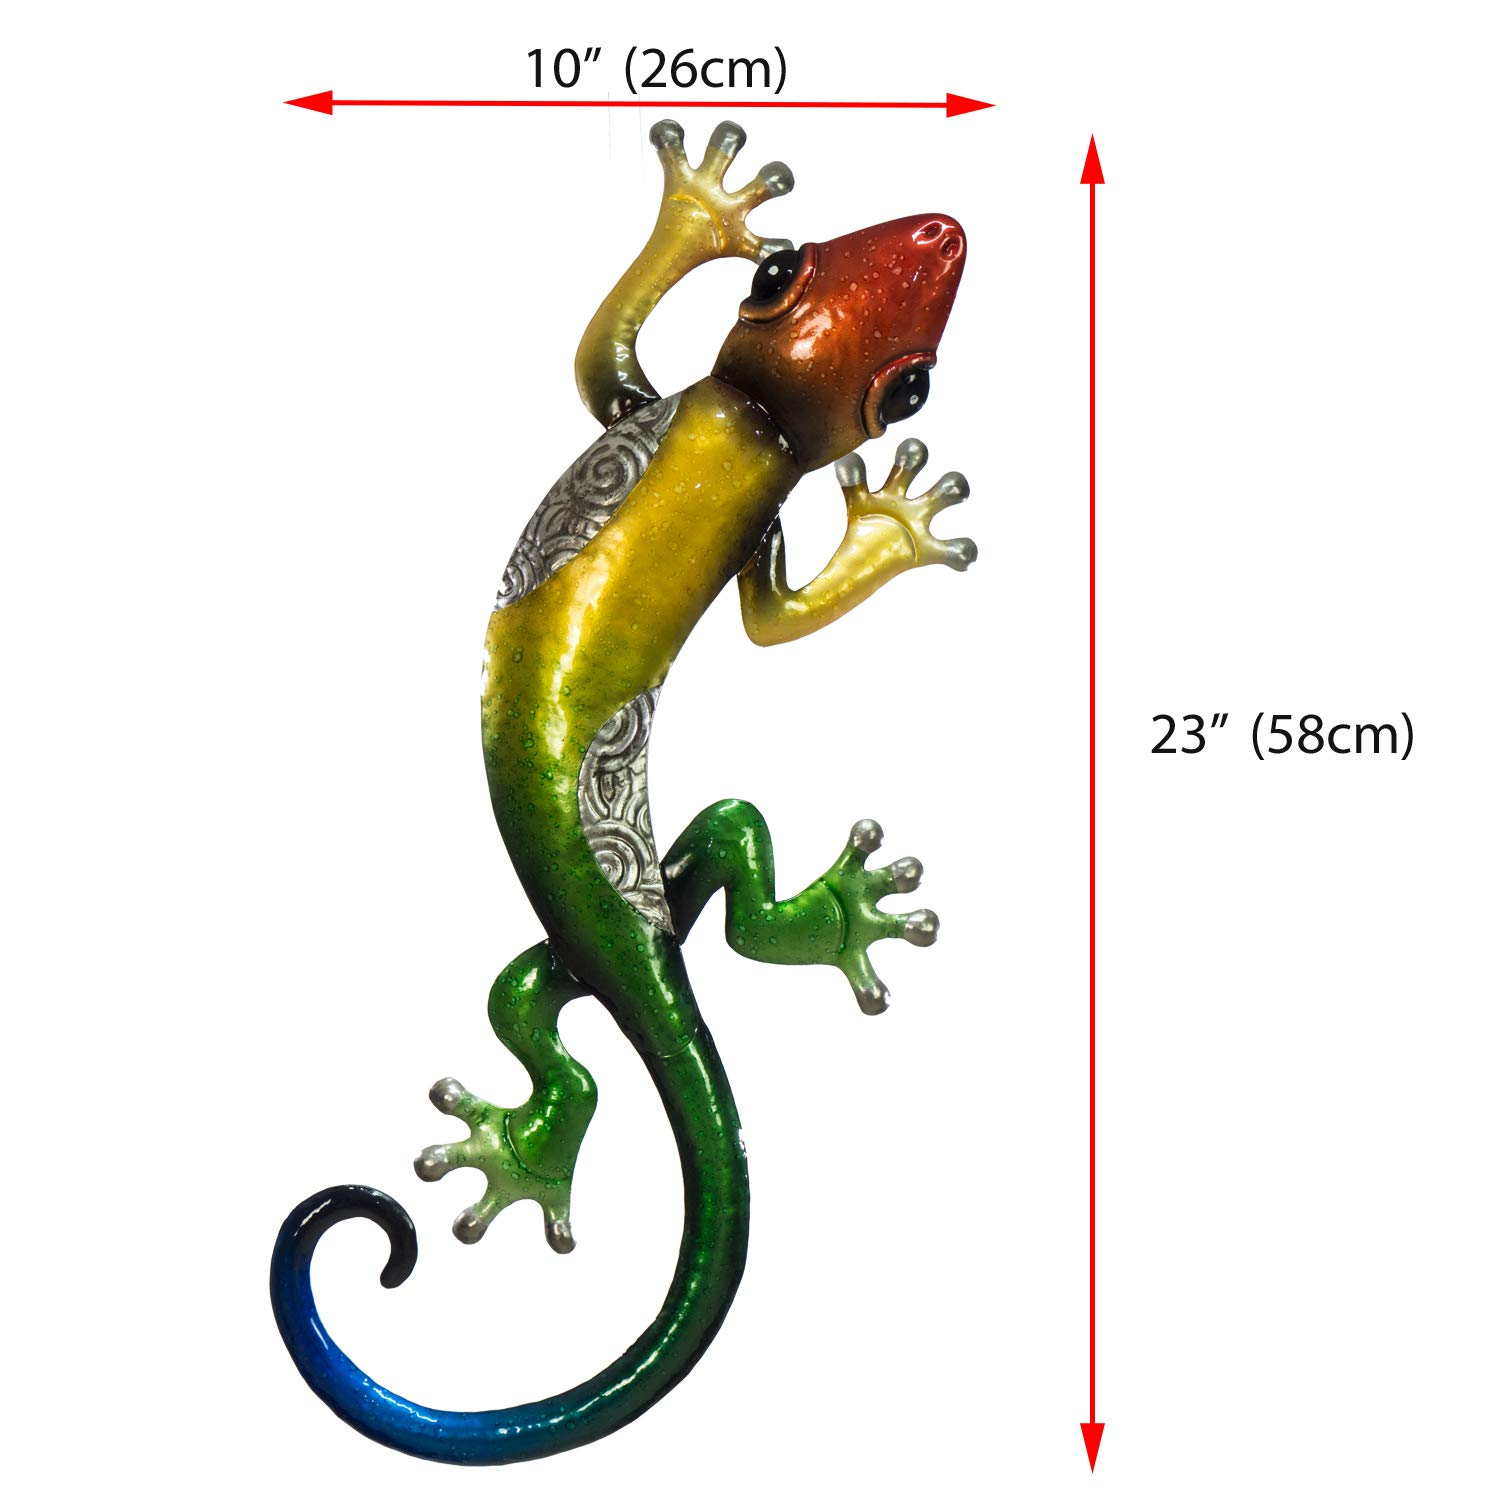 "Use Indoors or Outdoors Art 3D Design Nature Inspired Home Decoration Wall D/écor Hanging Hand Painted in Bold Colors Large Size 23/"" x 10/"" Gecko Metal Wall Decor"